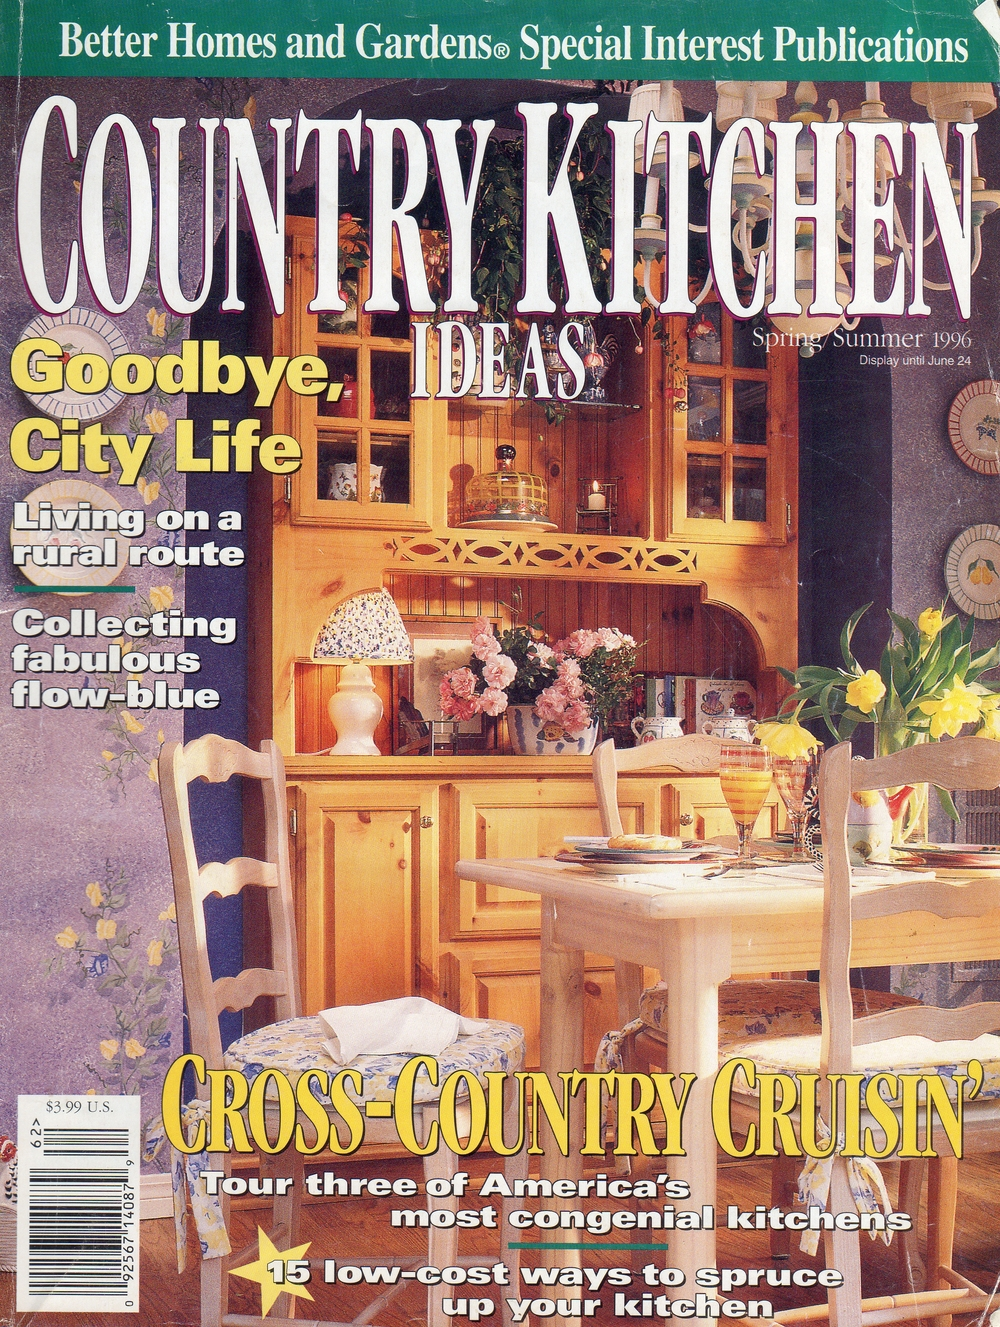 Kitchen Design by Beth Rengel front cover of Better Homes and Gardens Country Kitchen Magazine. 1996